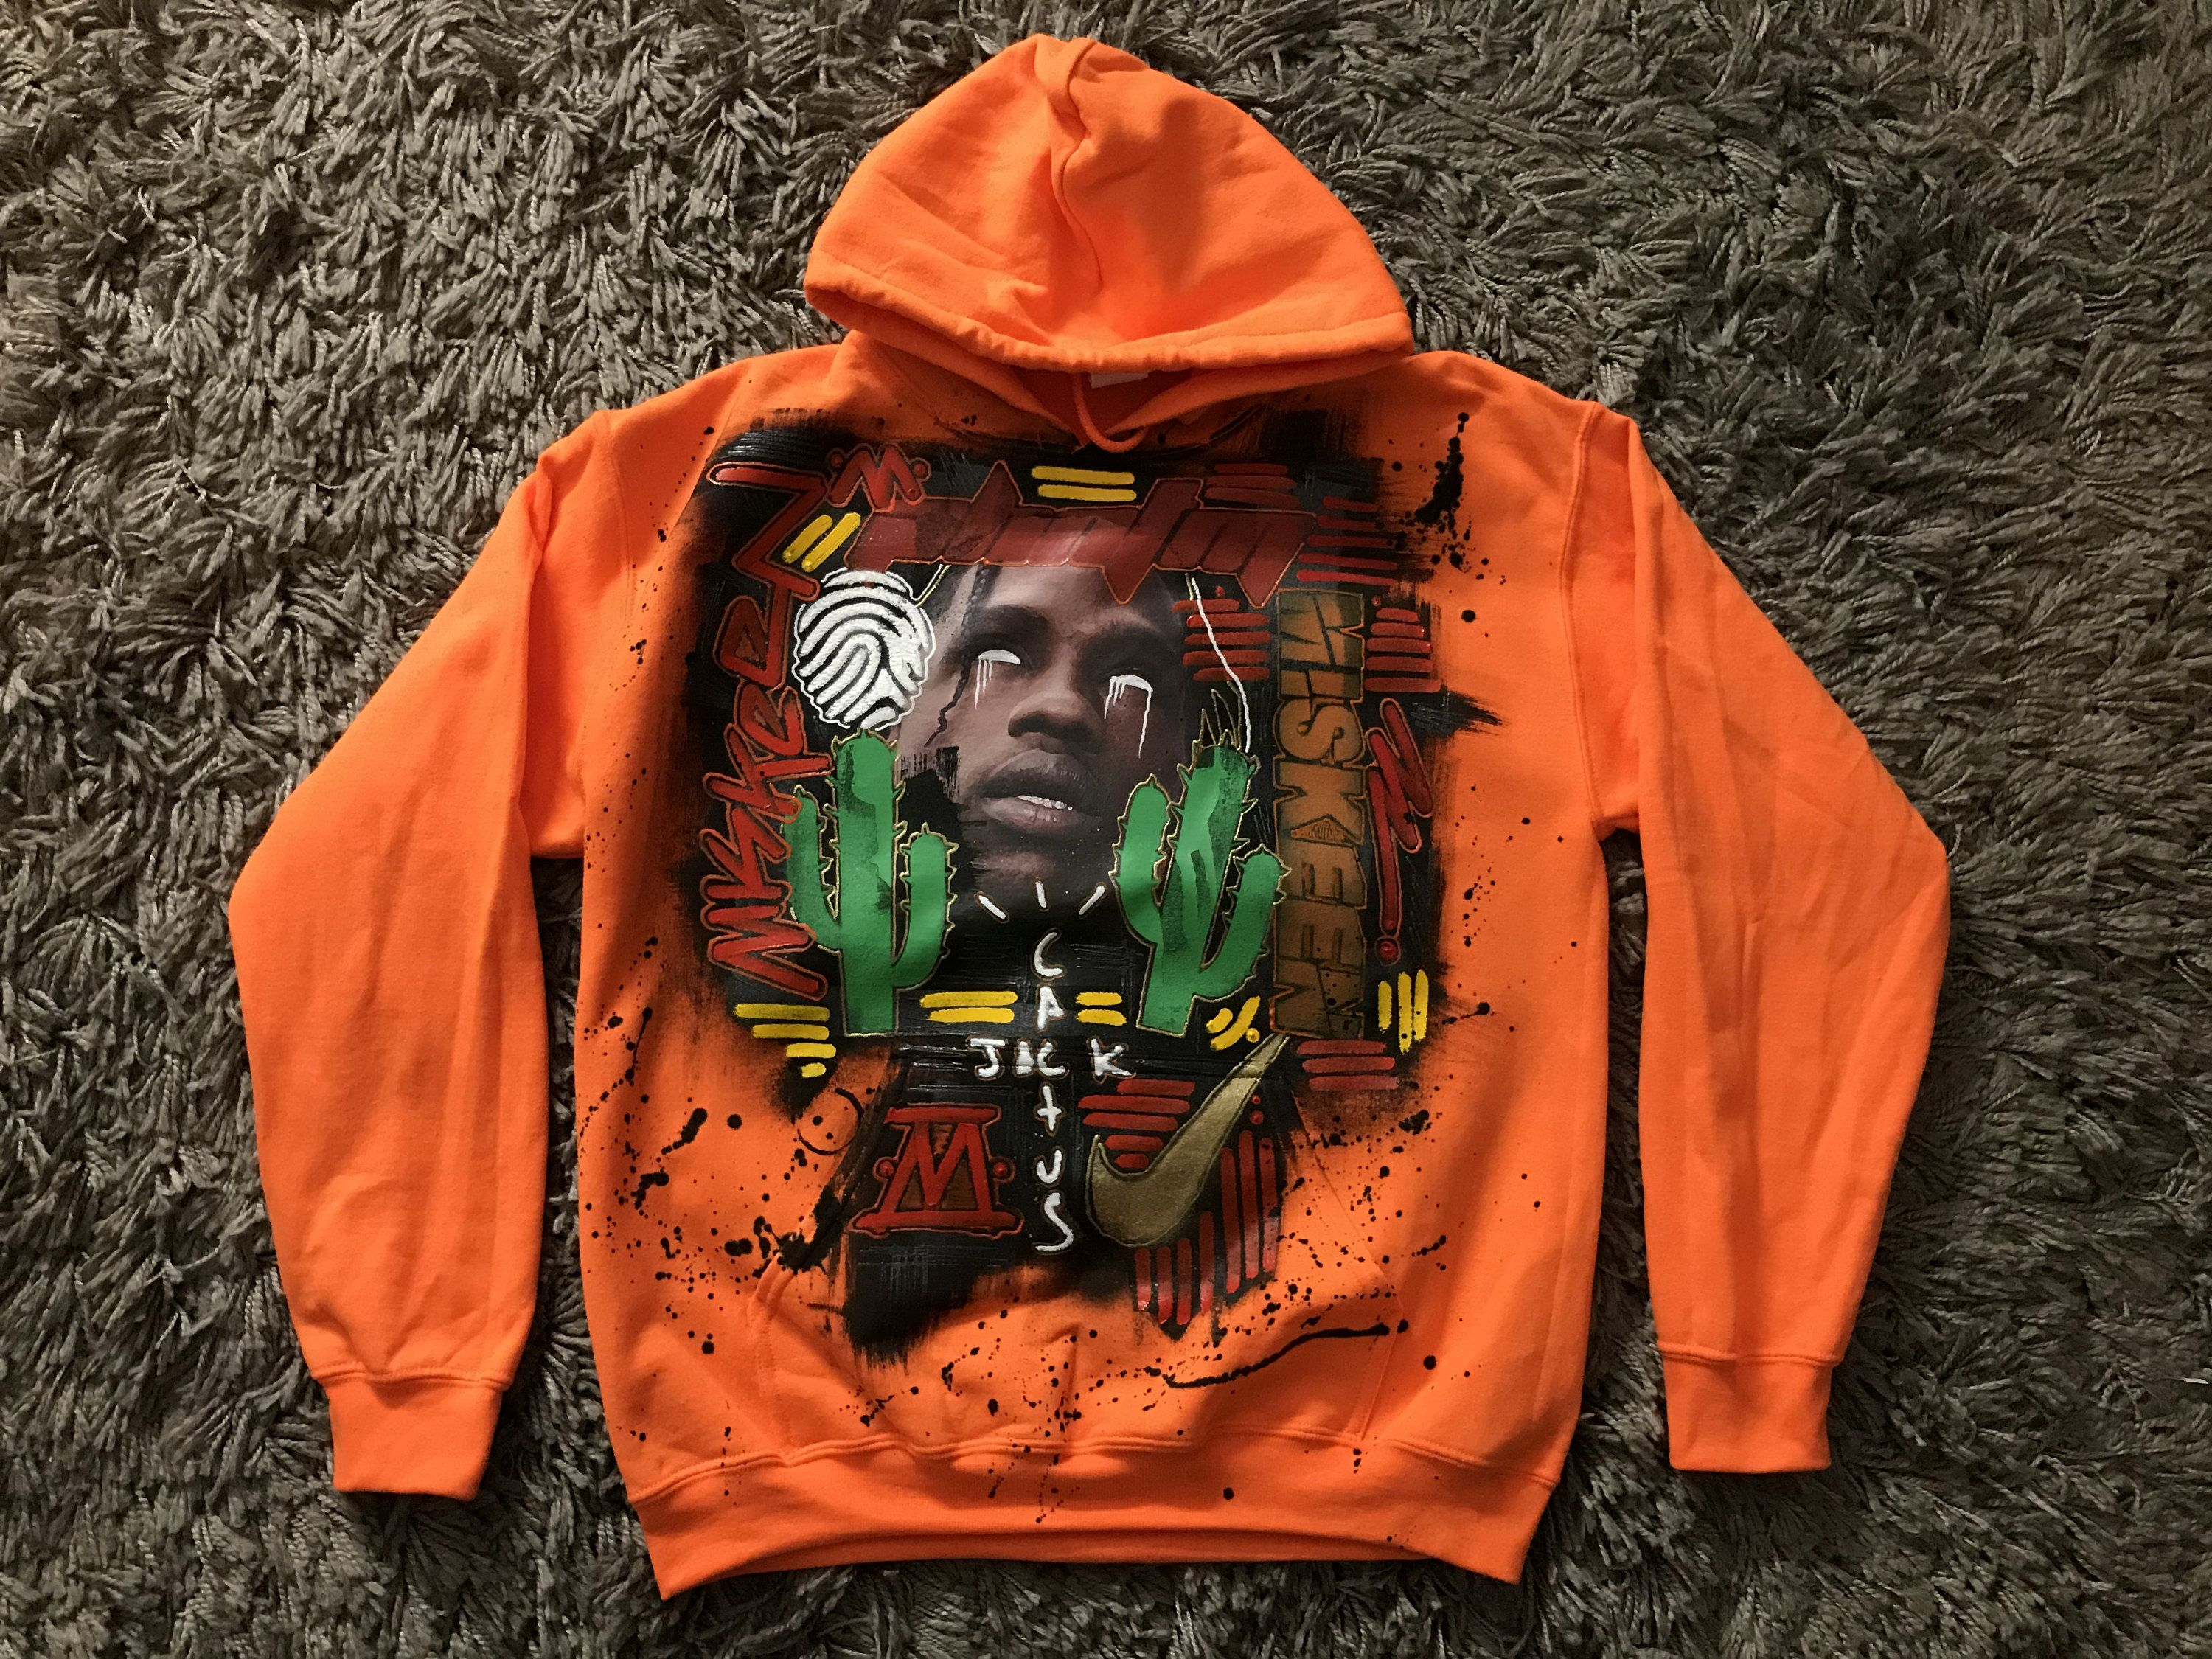 Travis Scott Astroworld Tour Merch Wish You Were Here Look Mom Etsy In 2020 Street Art Fashion Modified Clothing Custom Clothes